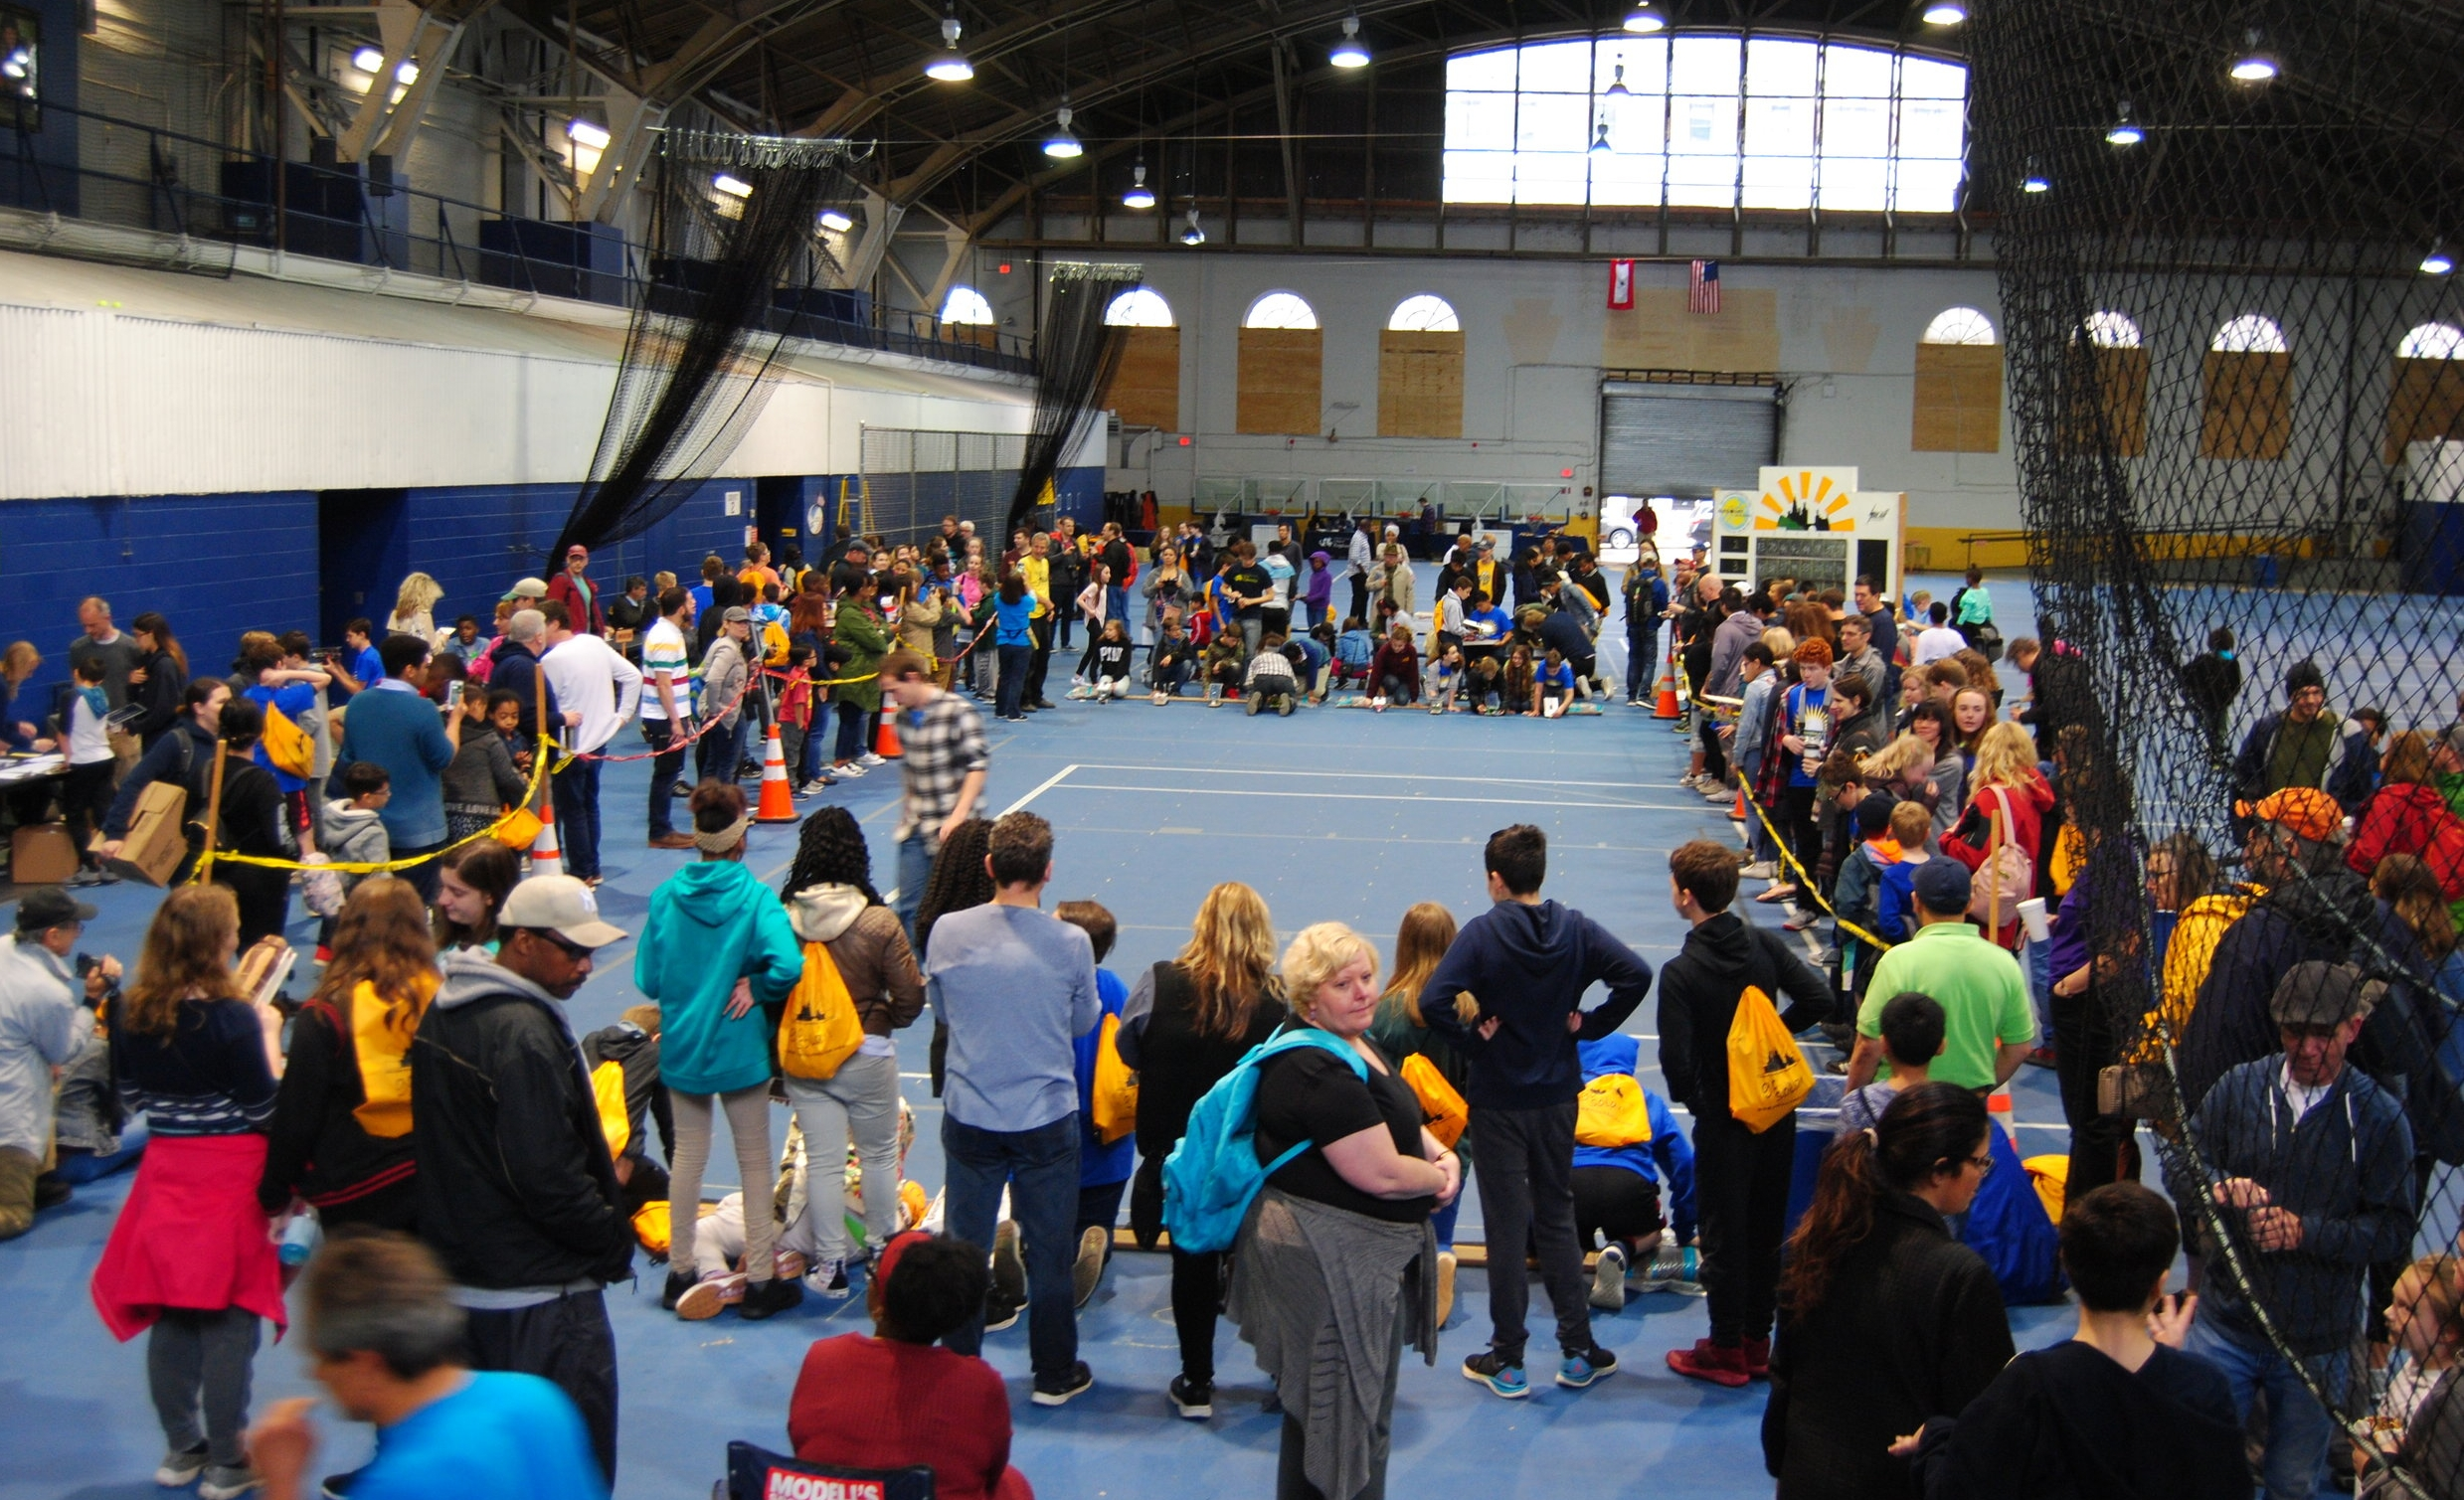 Indoor racing at the Drexel Armory